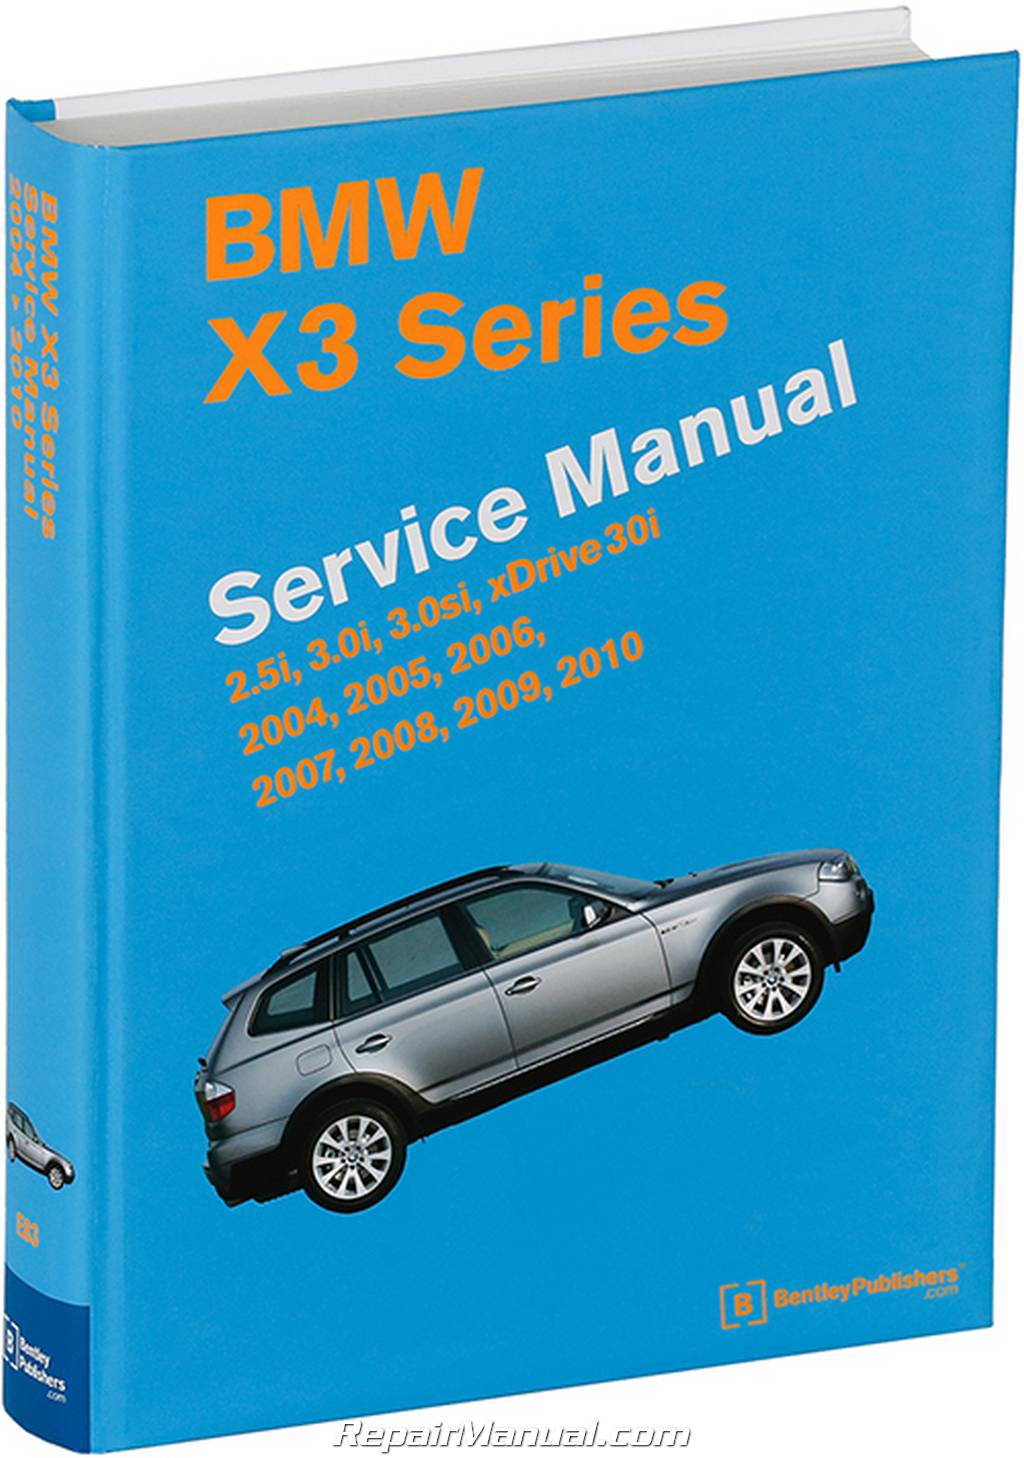 bmw x3 m54 n52 engines printed service manual 2004 2010 rh repairmanual com 2009 Altima 2012 X3